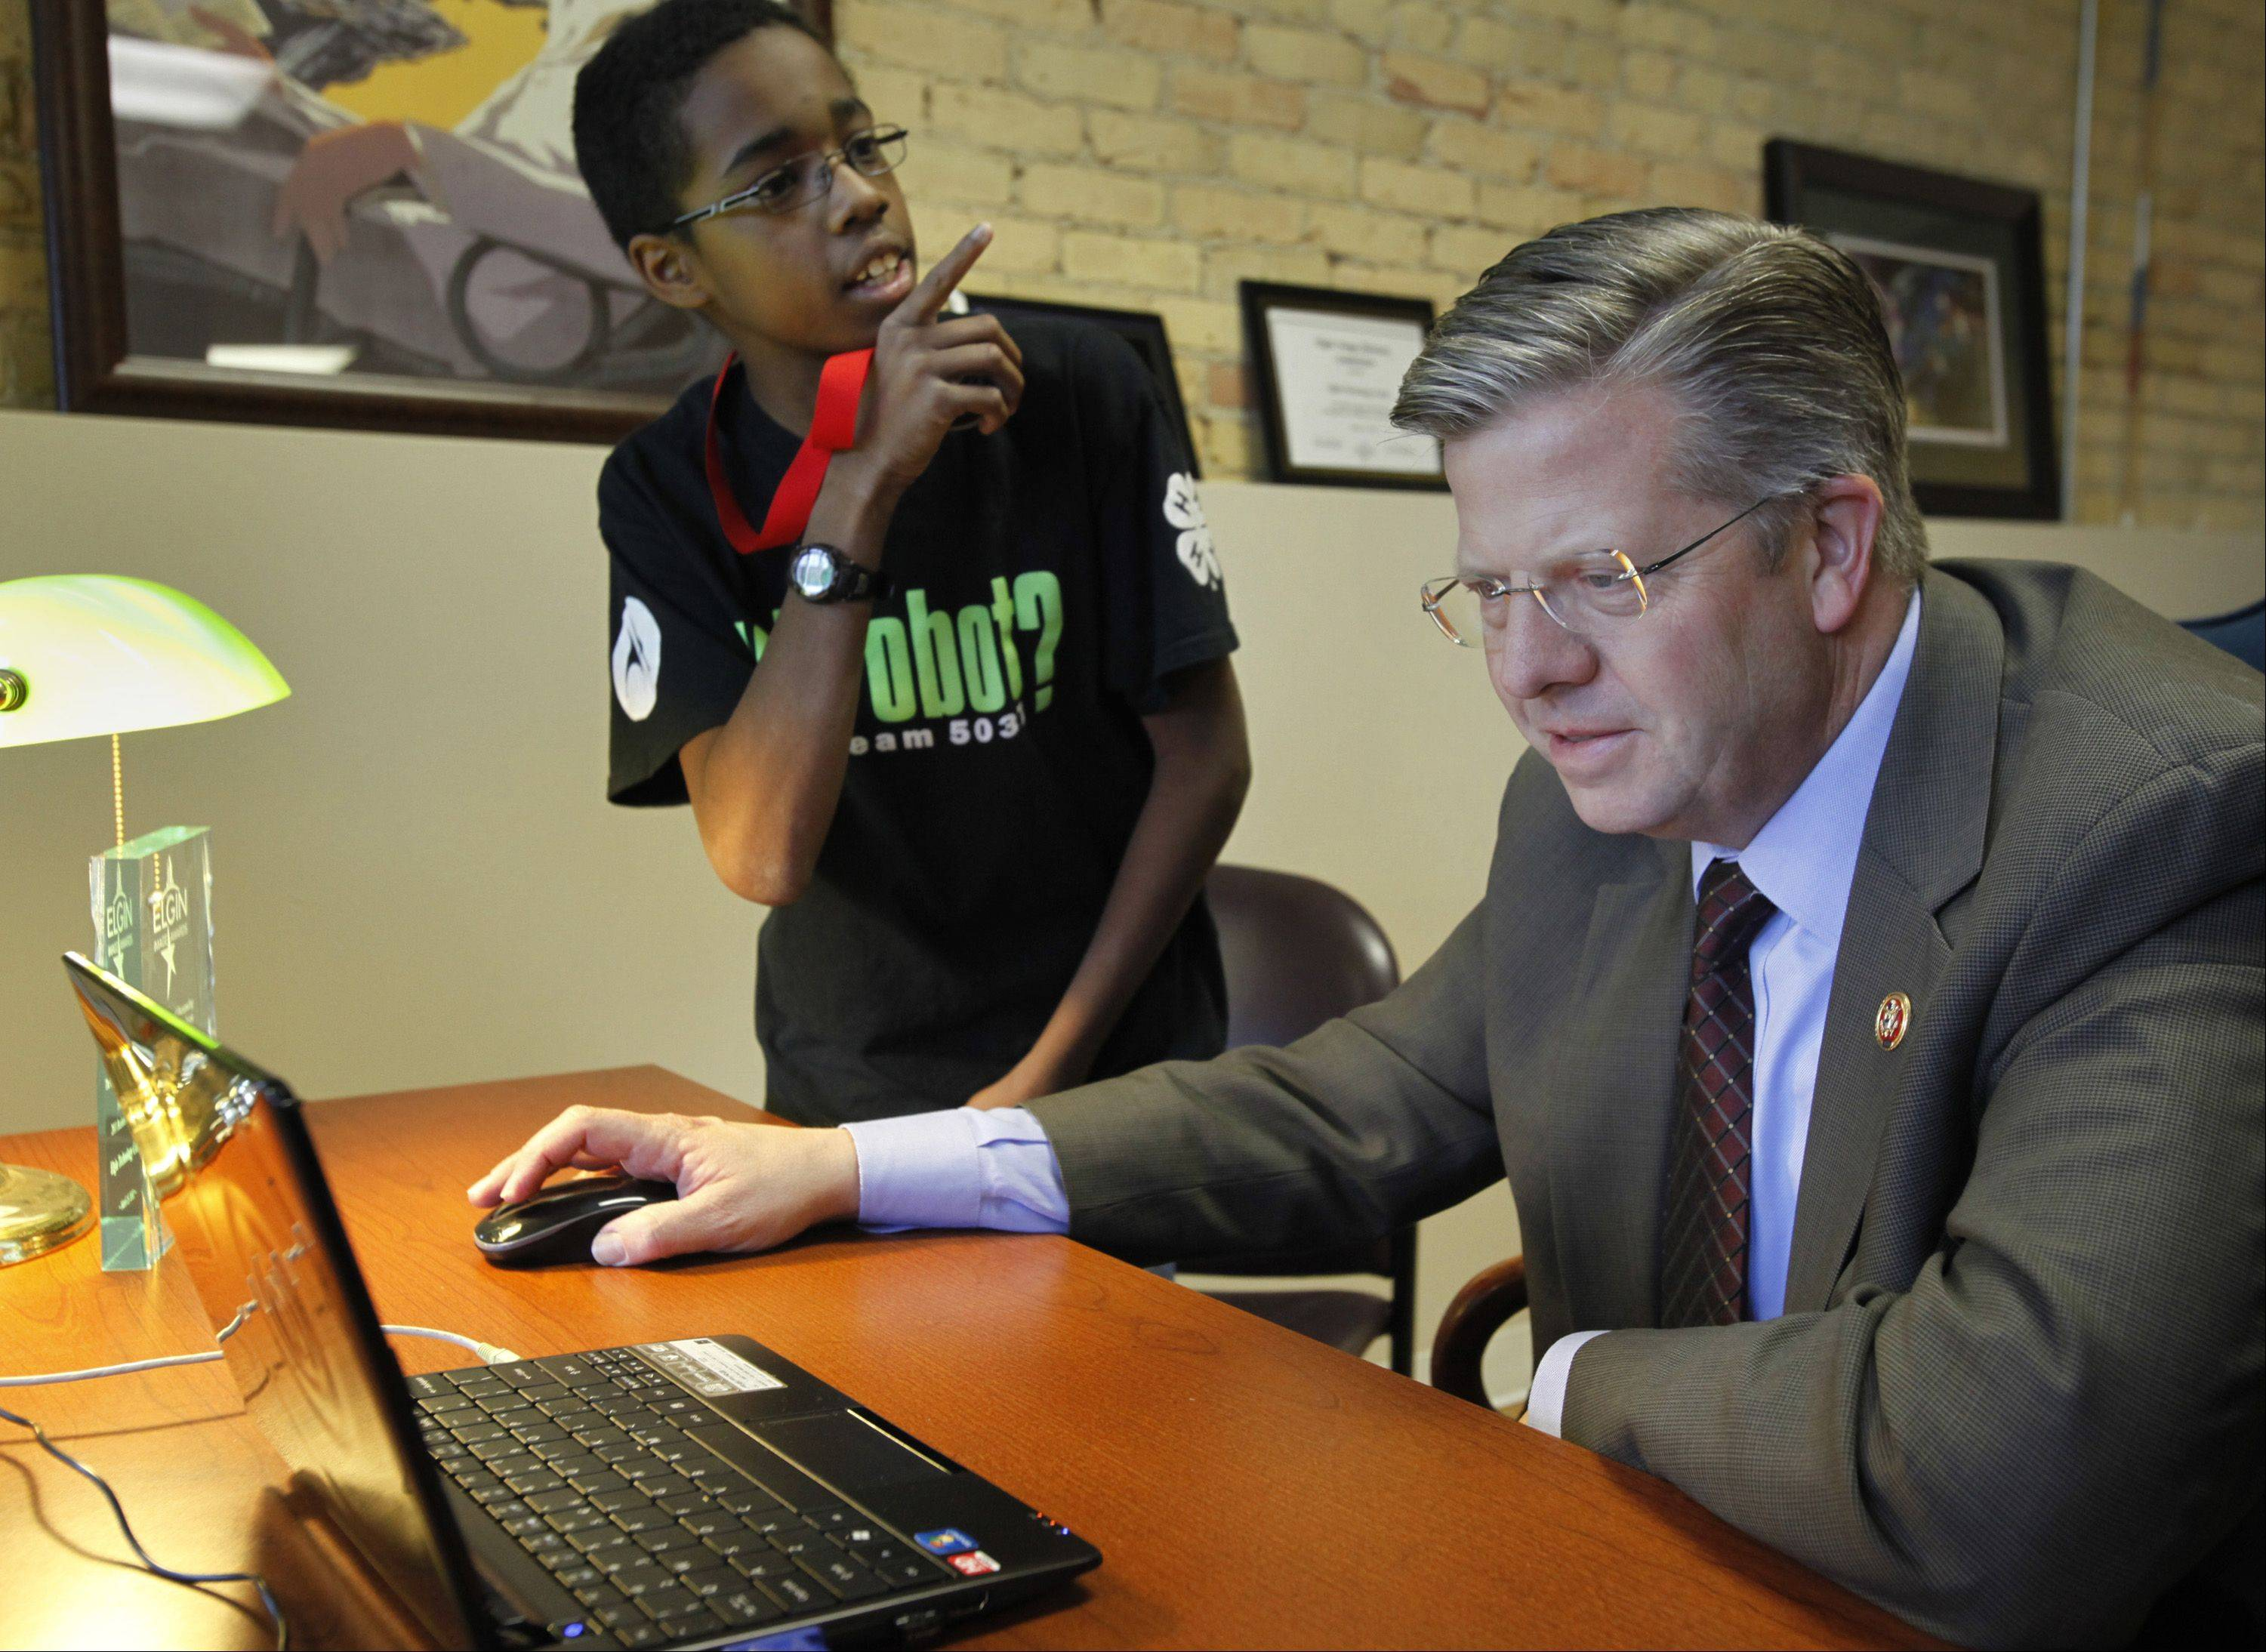 U.S. Rep. Randy Hultgren works with 12-year-old Patrick Stephen of Elgin to create lines of code at Elgin Technology Center for a simulated computer game.